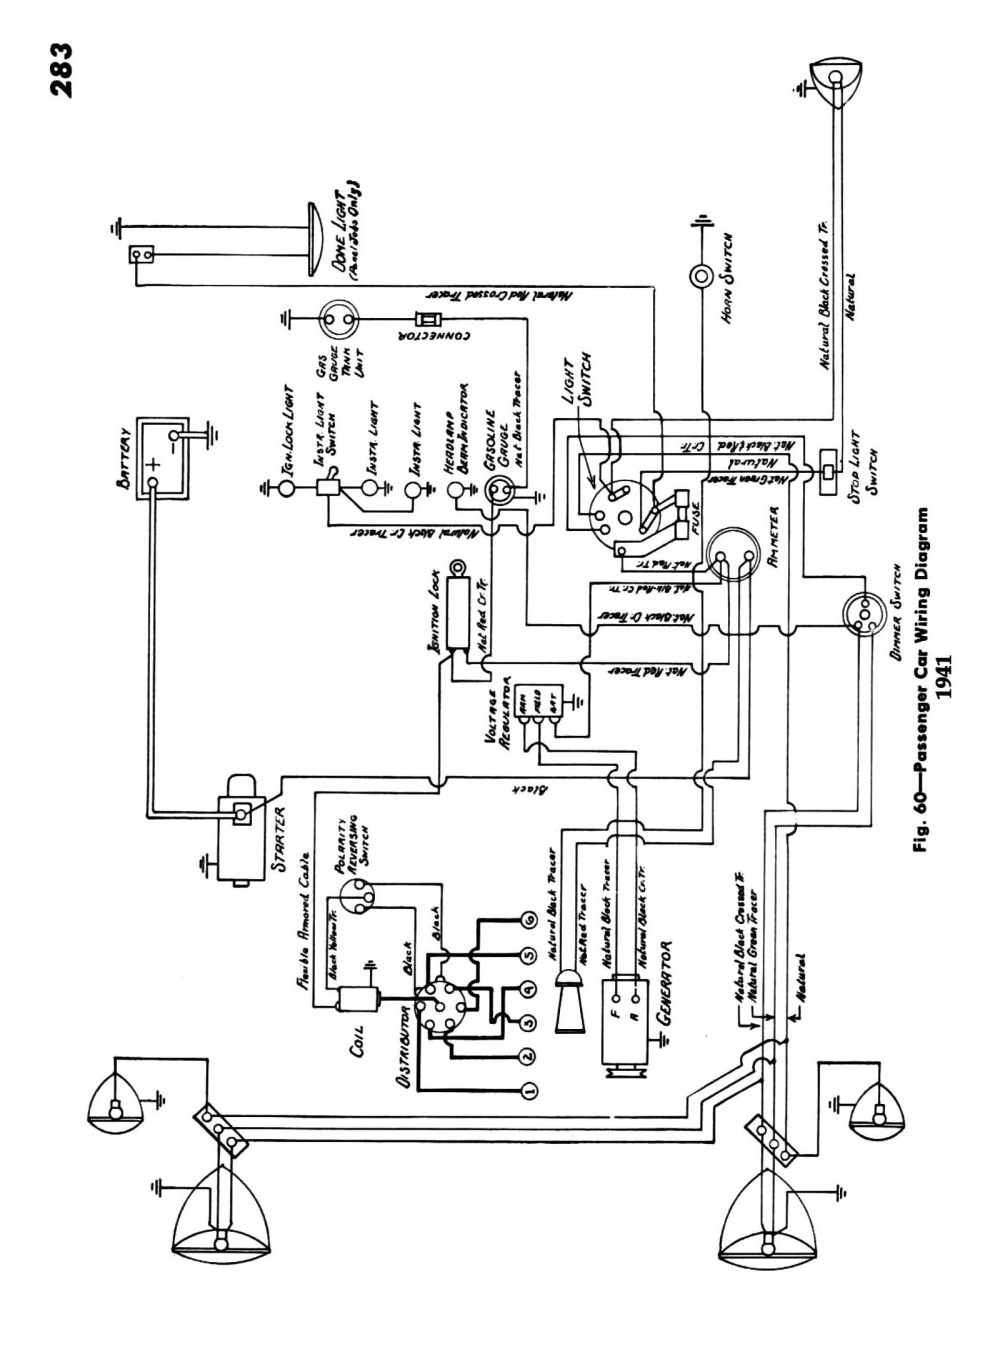 medium resolution of 6 volt positive ground electrical system wiring diagram wiring library john deere 345 schematic john deere 6 volt positive ground wiring diagram